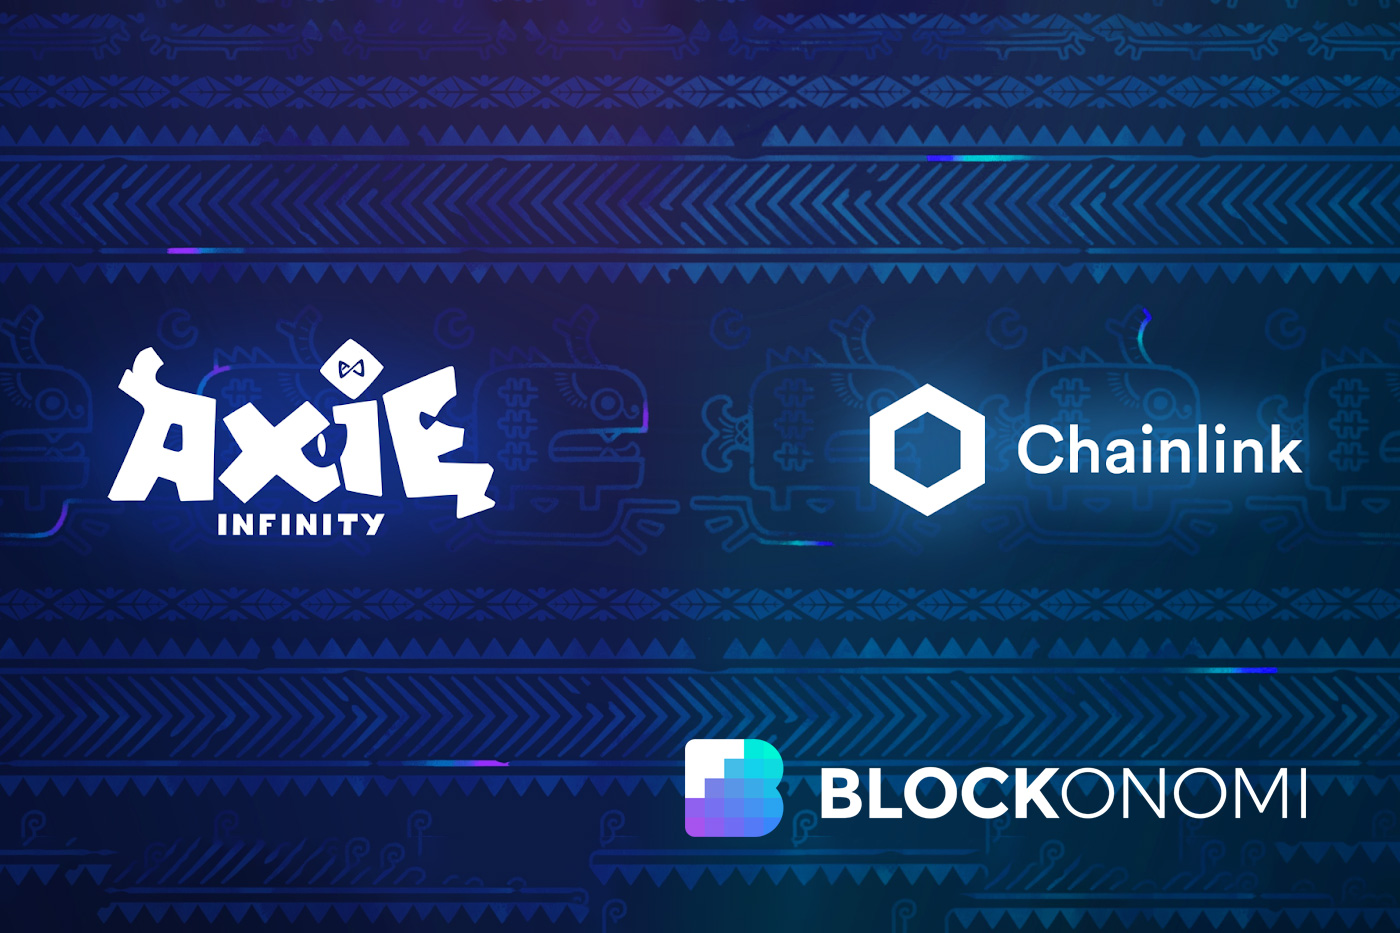 Top Ethereum Game Axie Infinity Embraces Chainlink Oracles